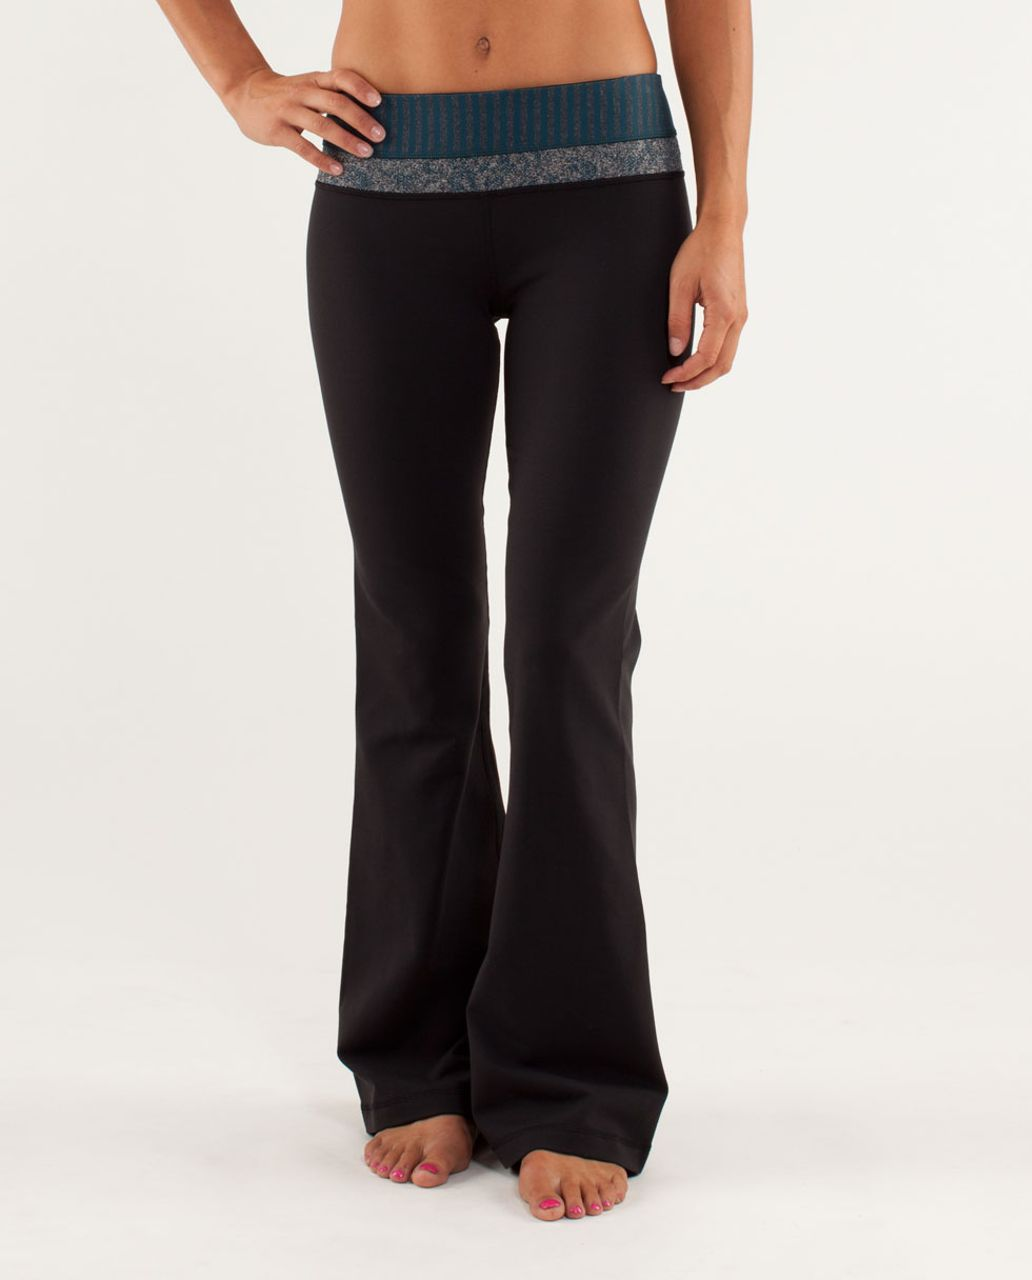 Lululemon Groove Pant *Slim (Regular) - Black / Half Micro Macro Alberta Lake Black / Rose Herringbone Alberta Lake